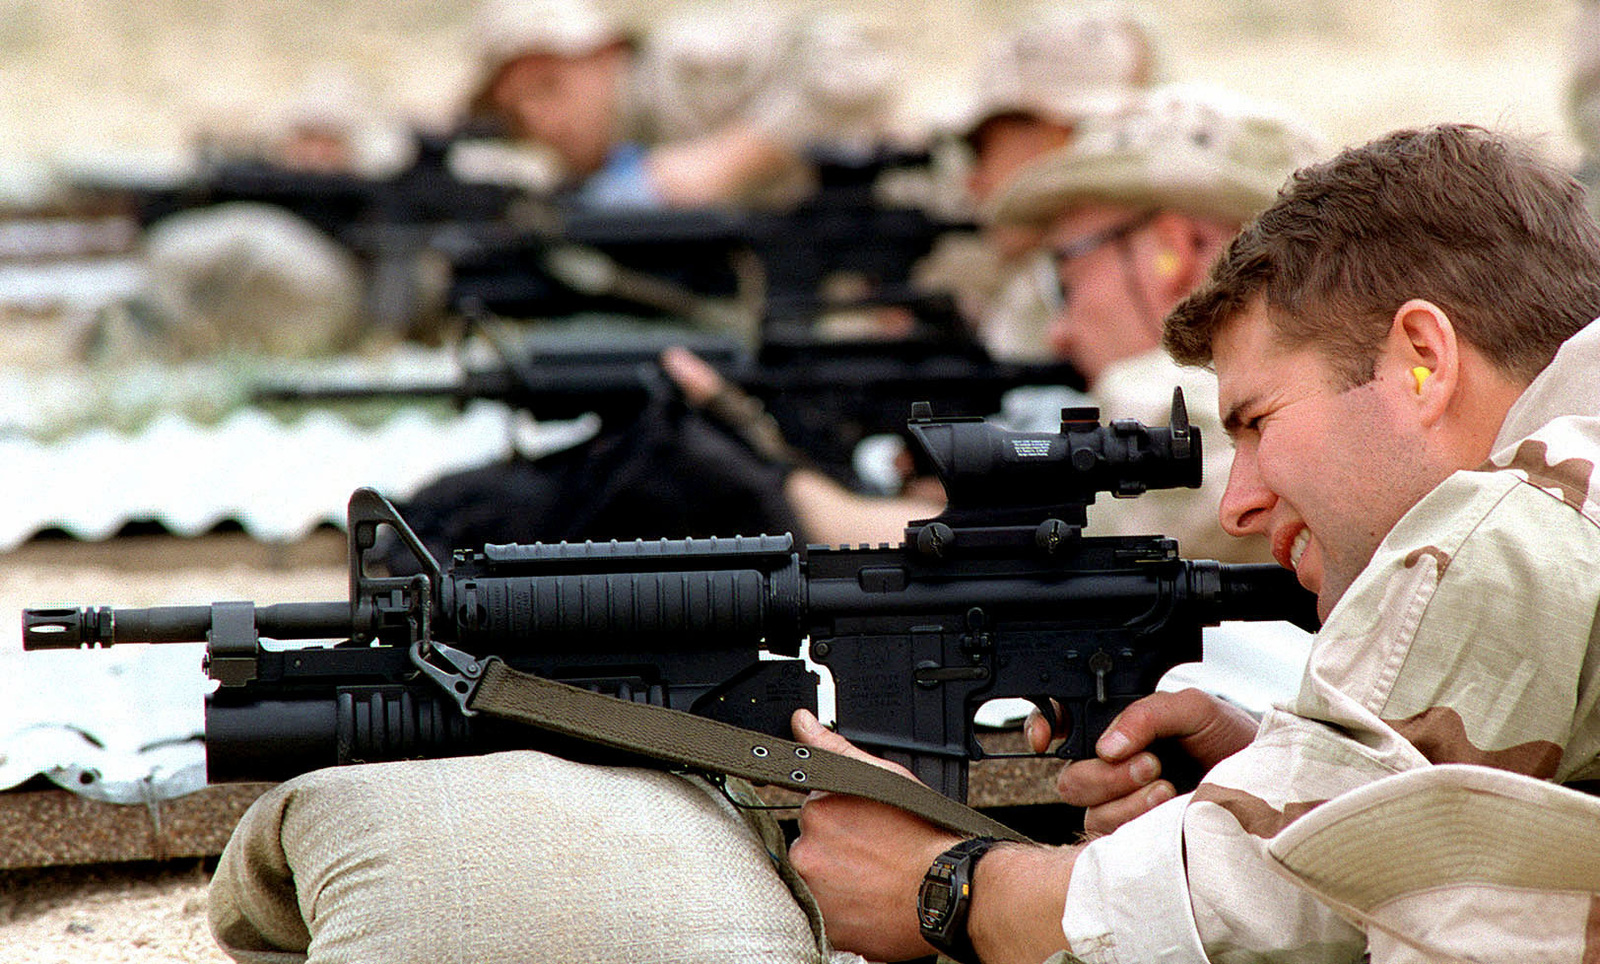 US Navy SEALS, from SEAL Team 8, shoot Colt 5 56mm M-4 Carbine rifles on